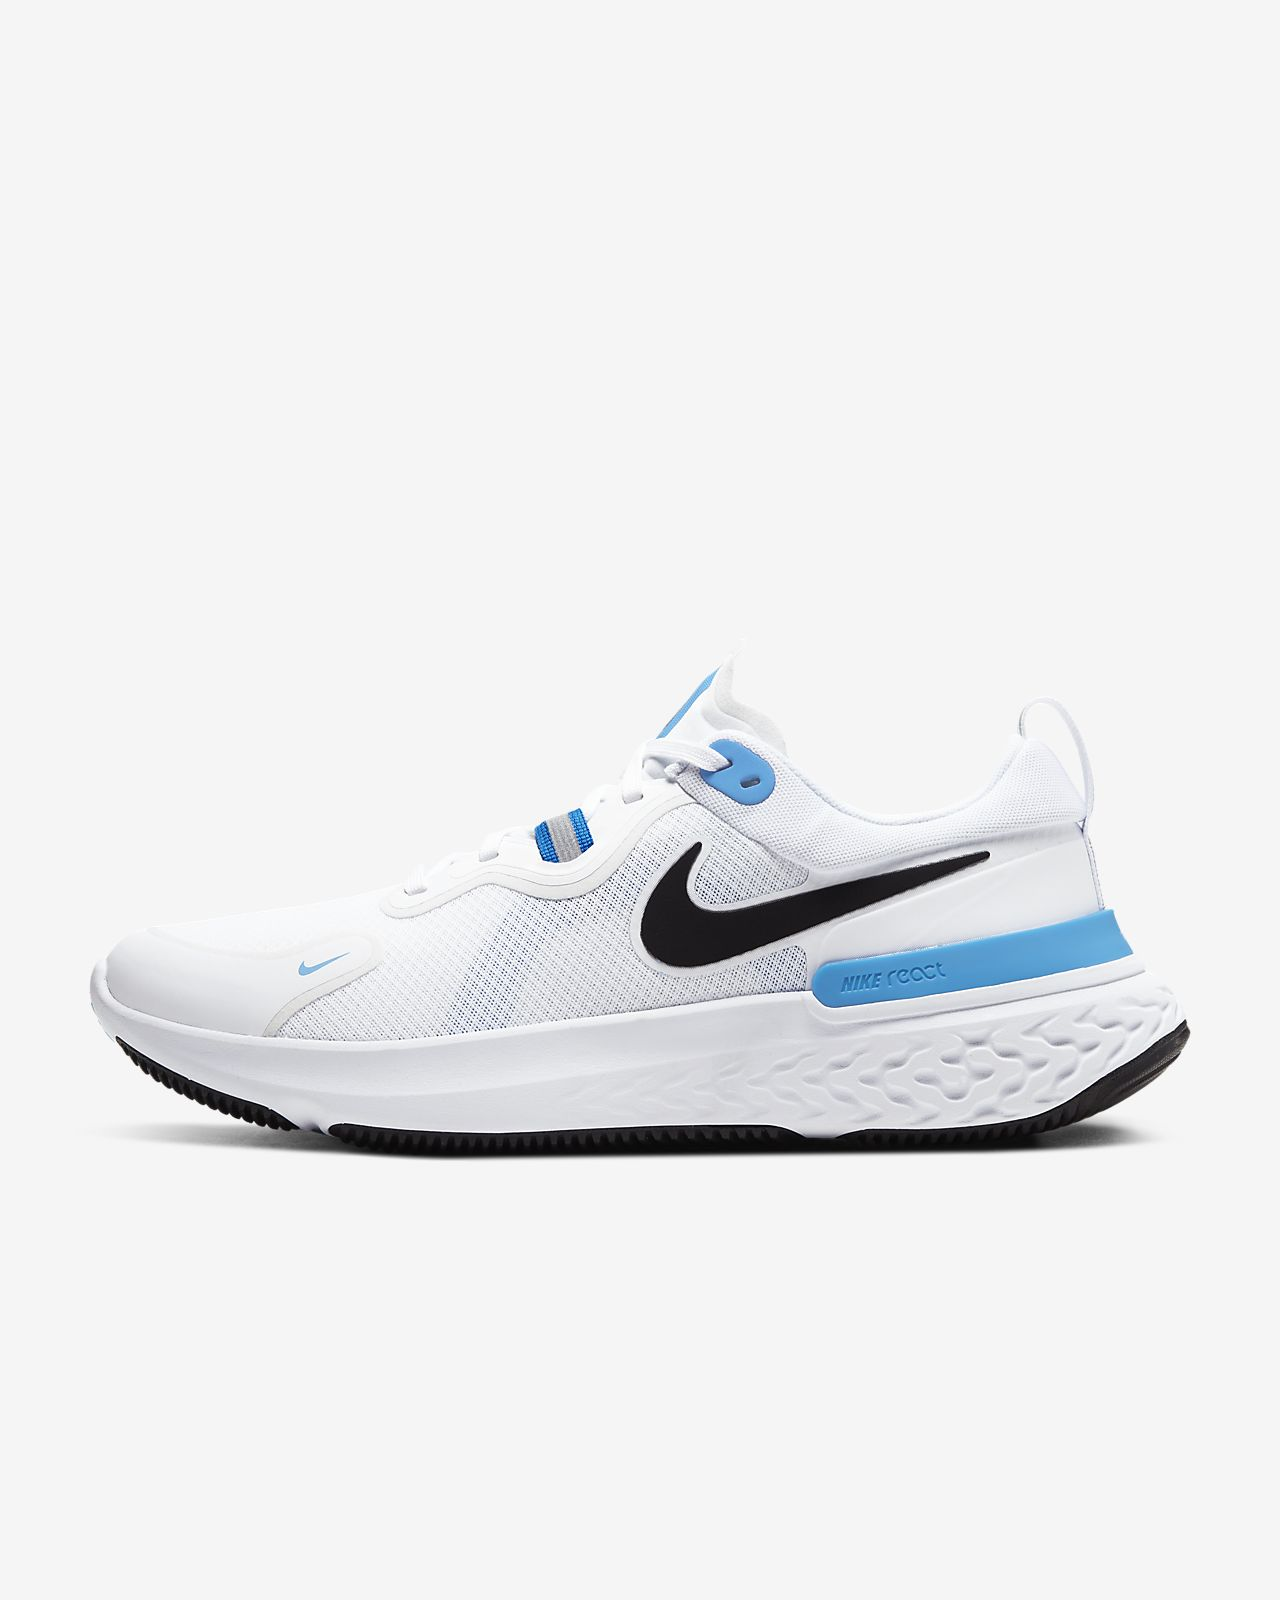 Chaussure de running Nike React Miler pour Homme